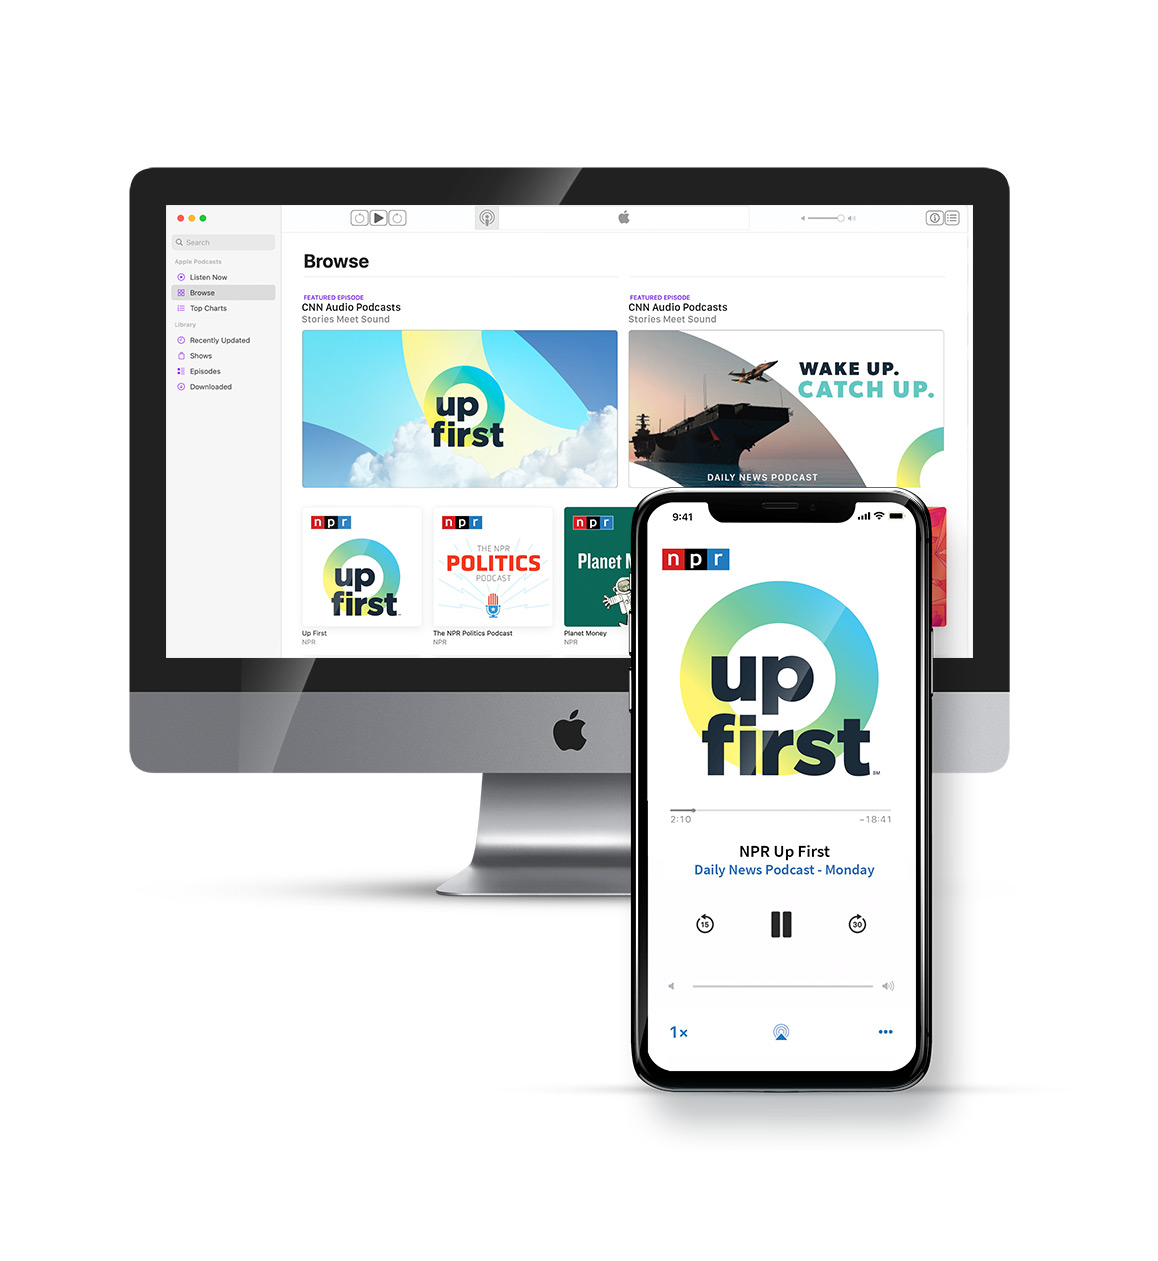 NPR Up First podcast cover design in a smart phone